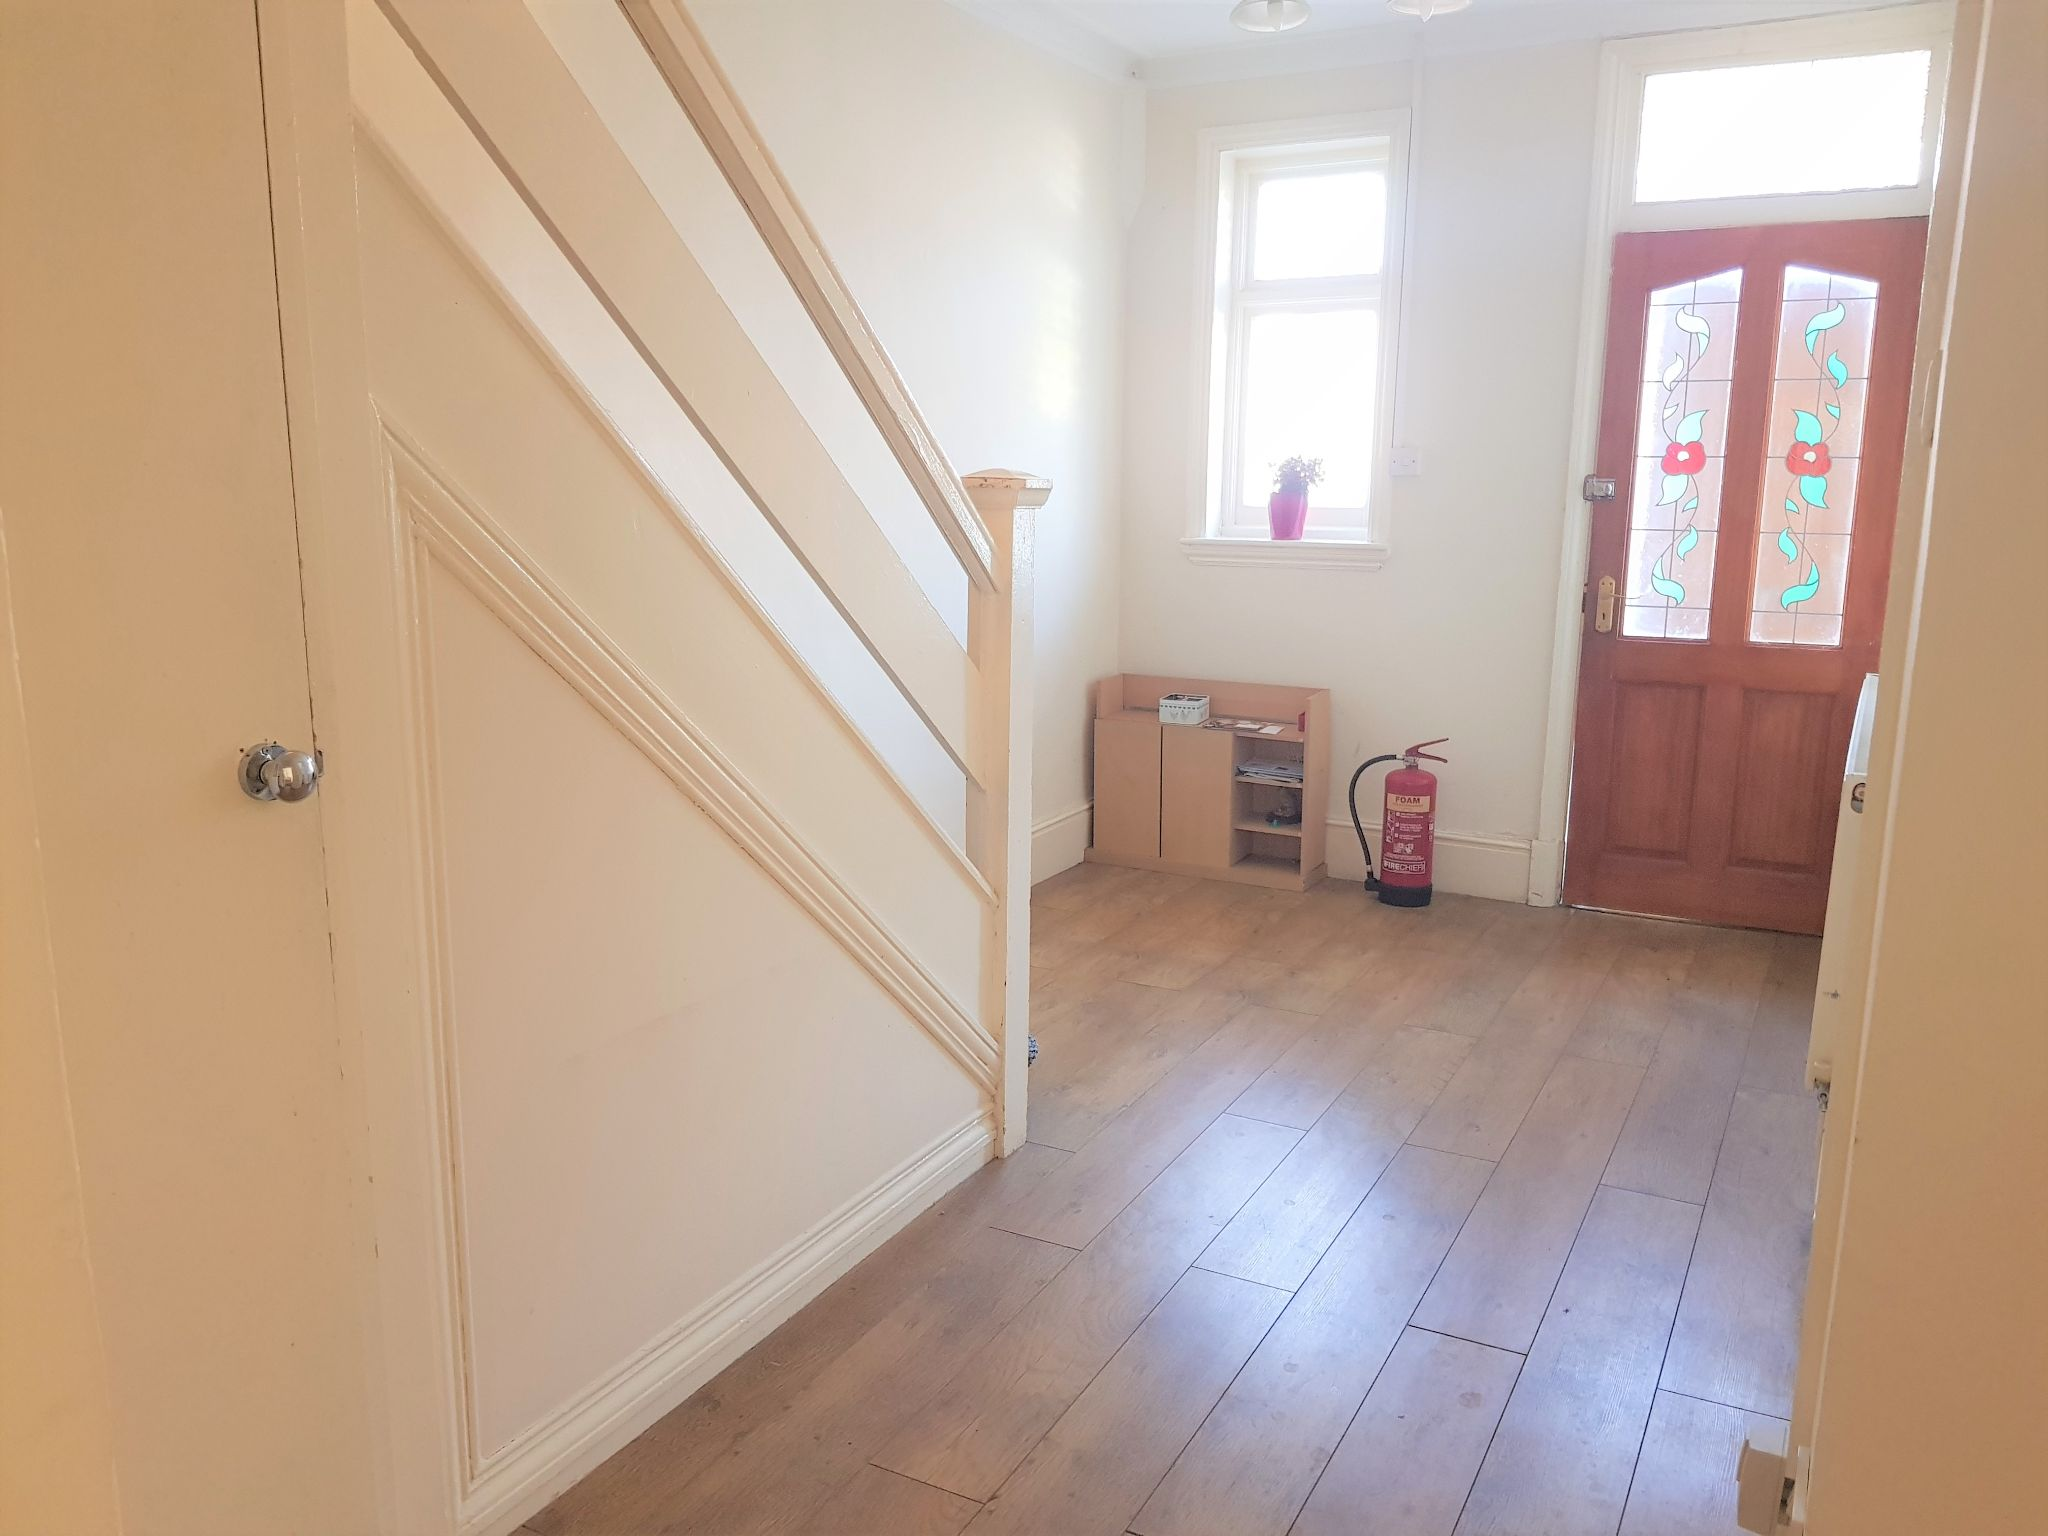 1 Bed Shared House To Rent - Entrance Hallway